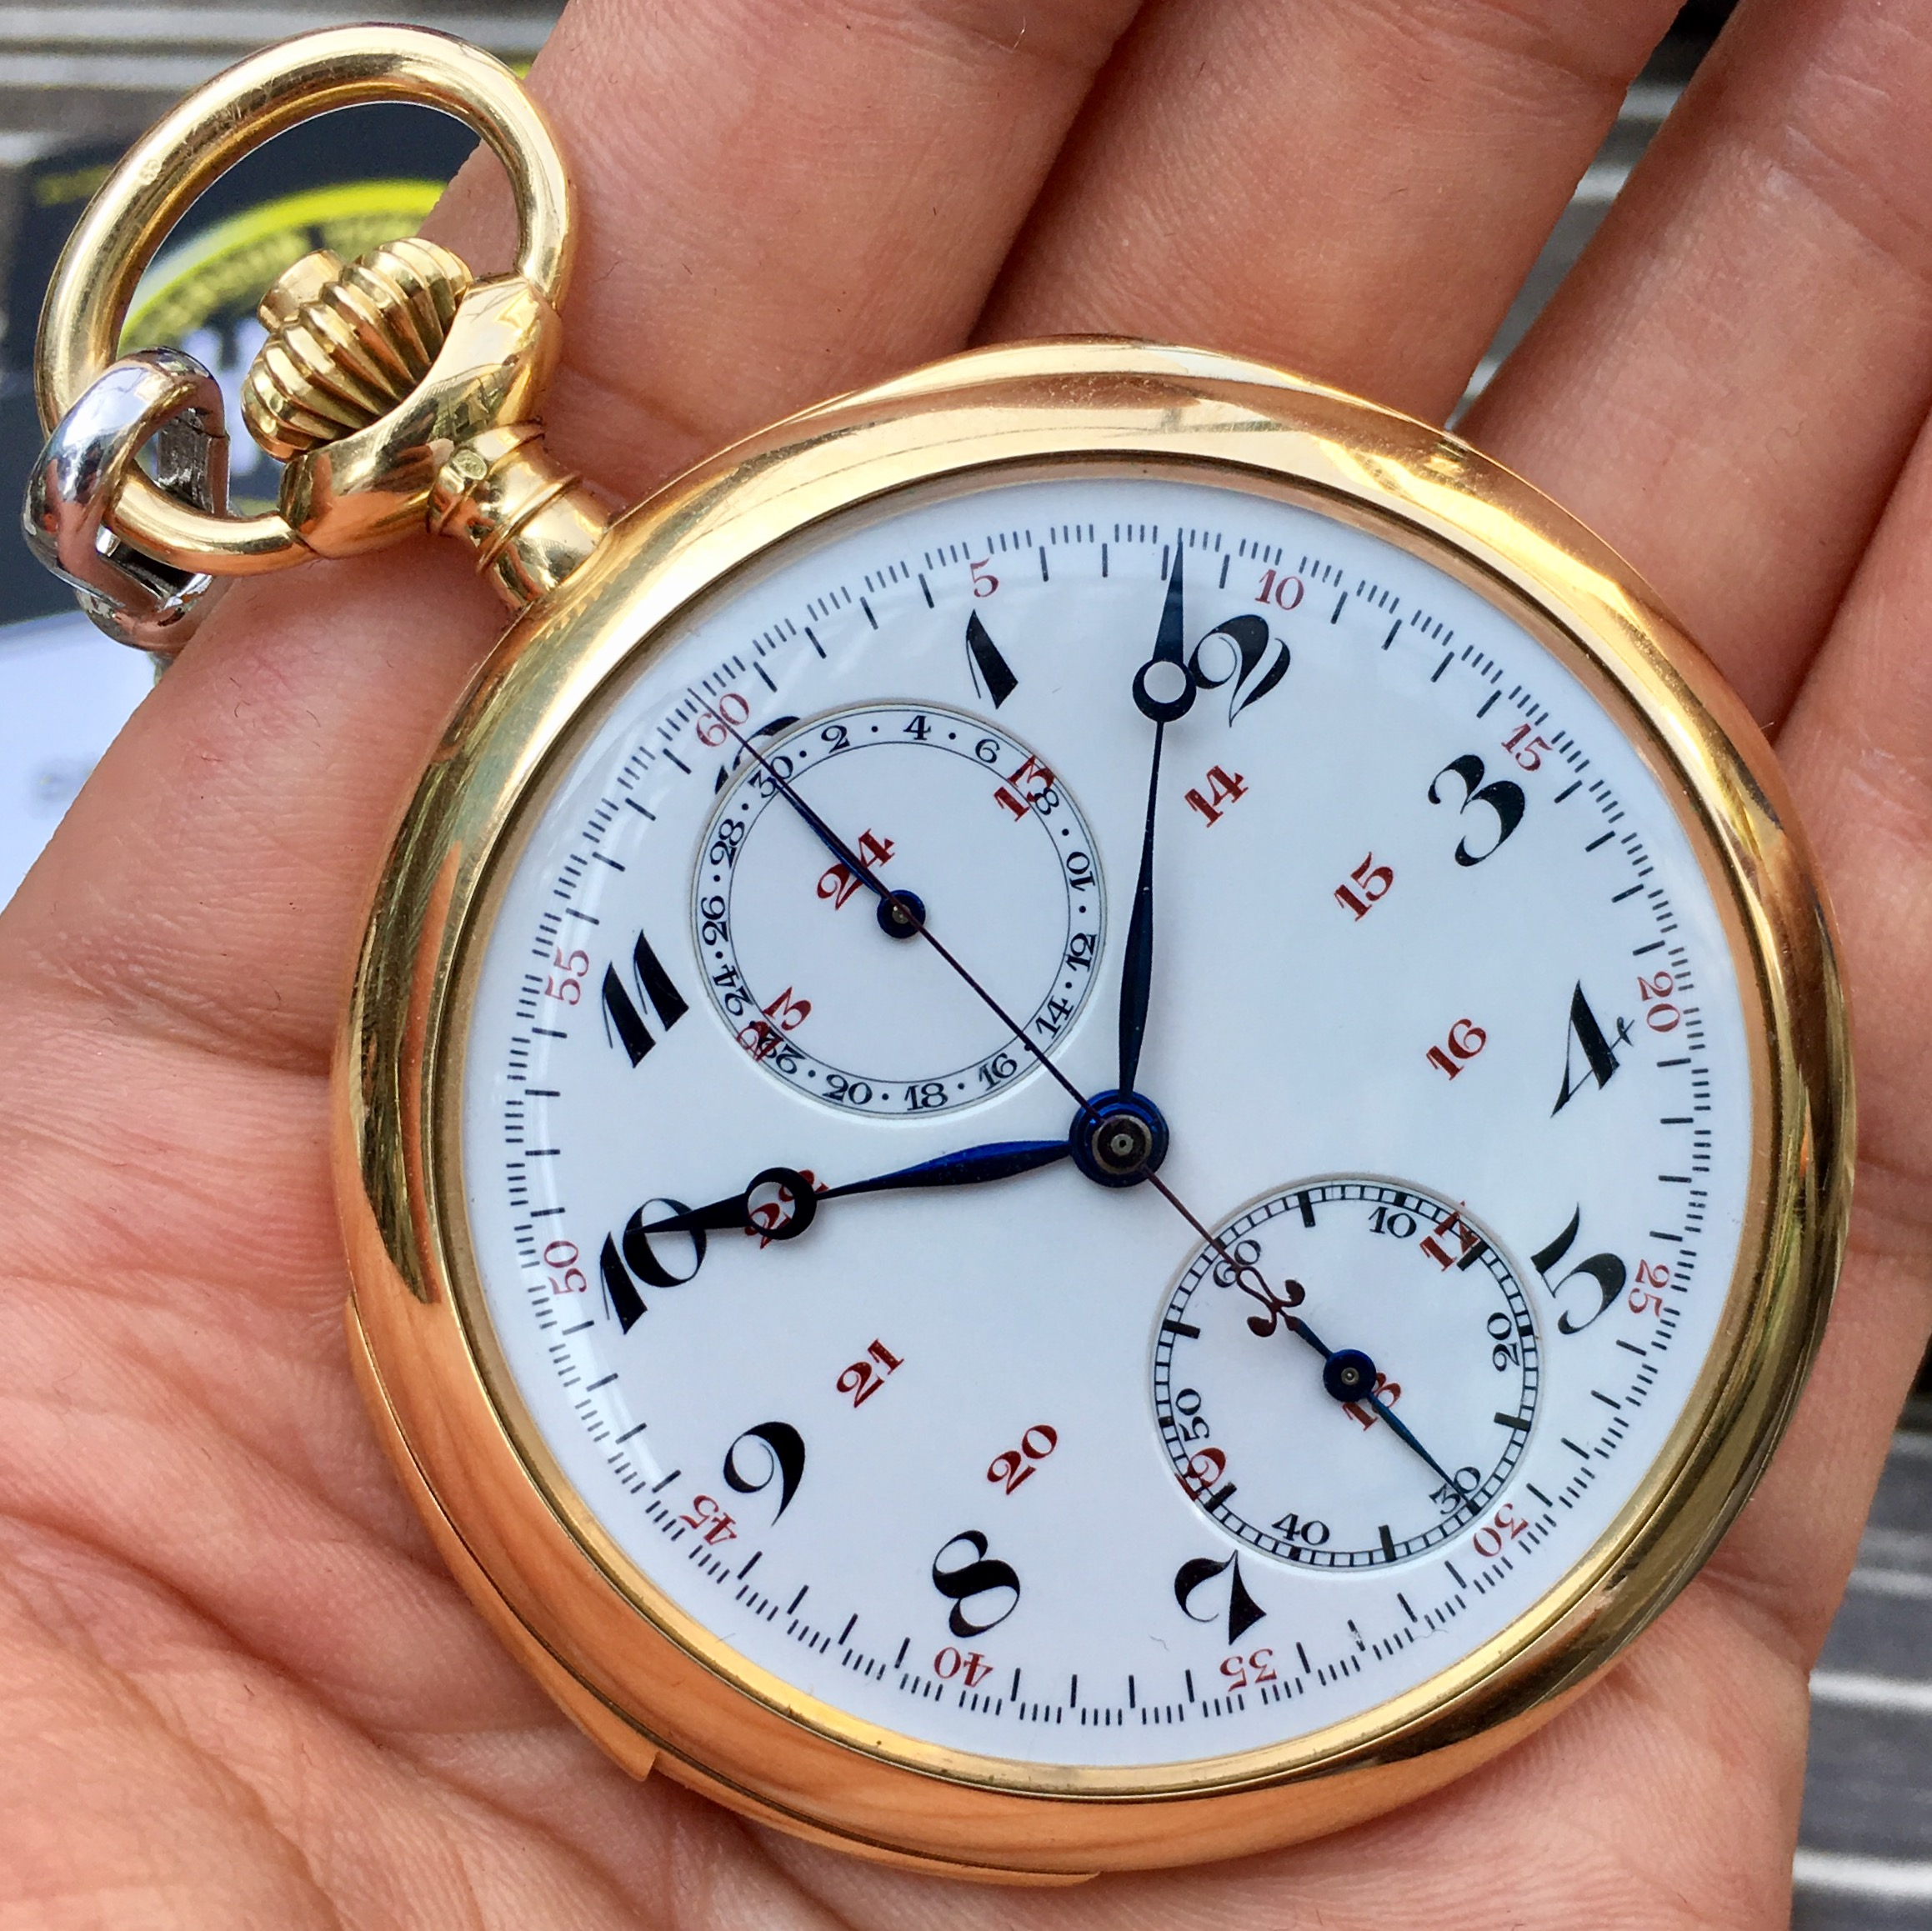 Mr. Dufour's precious pocket watch from the 1930s: A minute repeater monopusher chronograph.